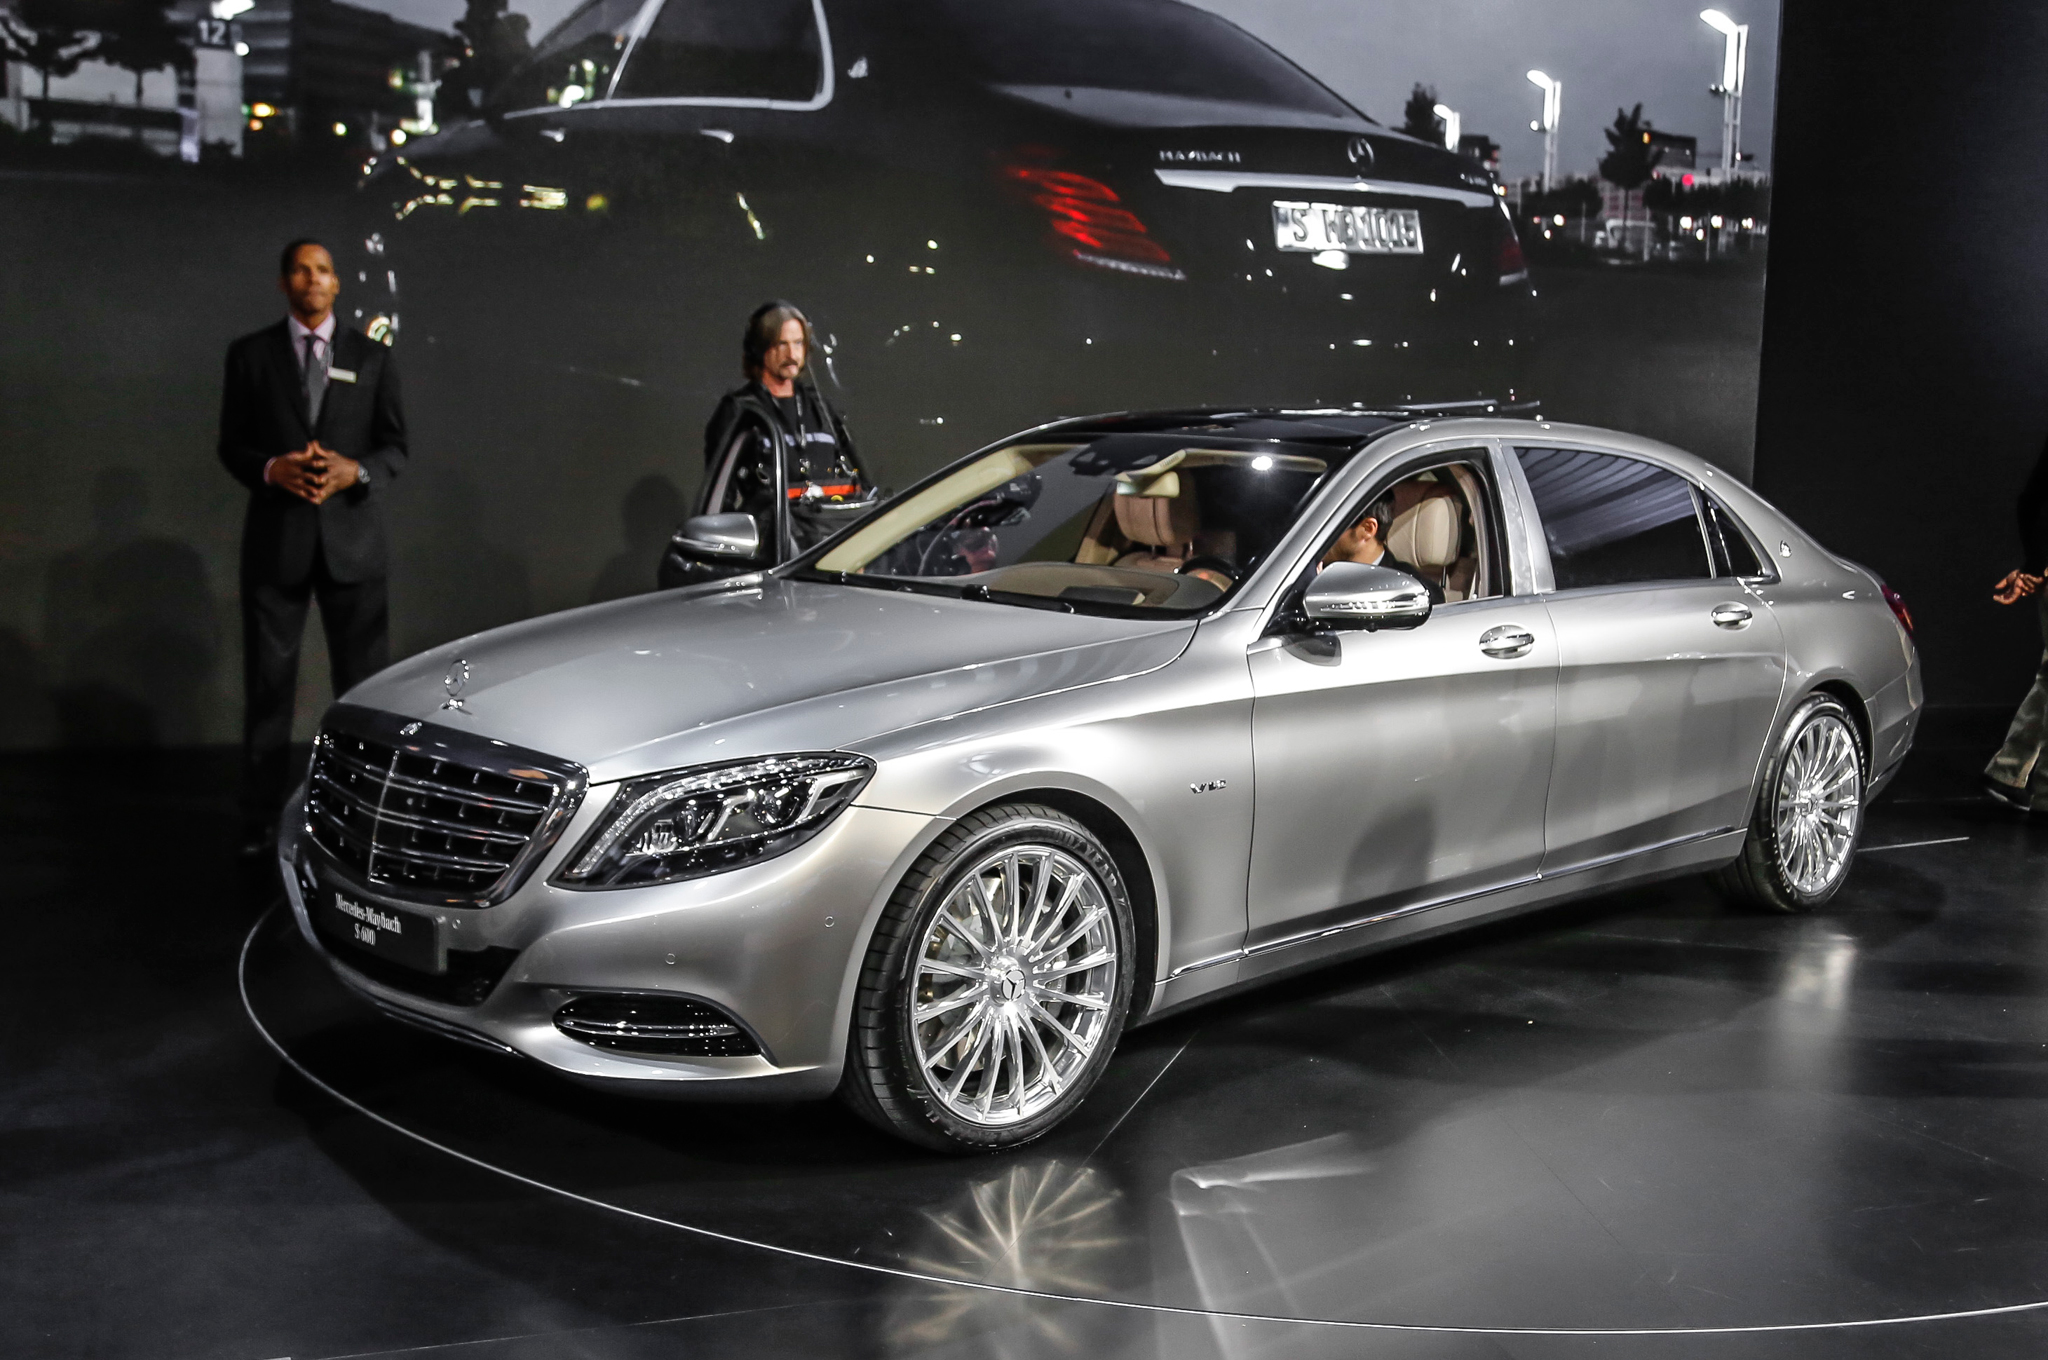 7 things the 2016 mercedes maybach s600 has that the s class doesn\u0027t7 things the 2016 mercedes maybach s600 has that the s class doesn\u0027t